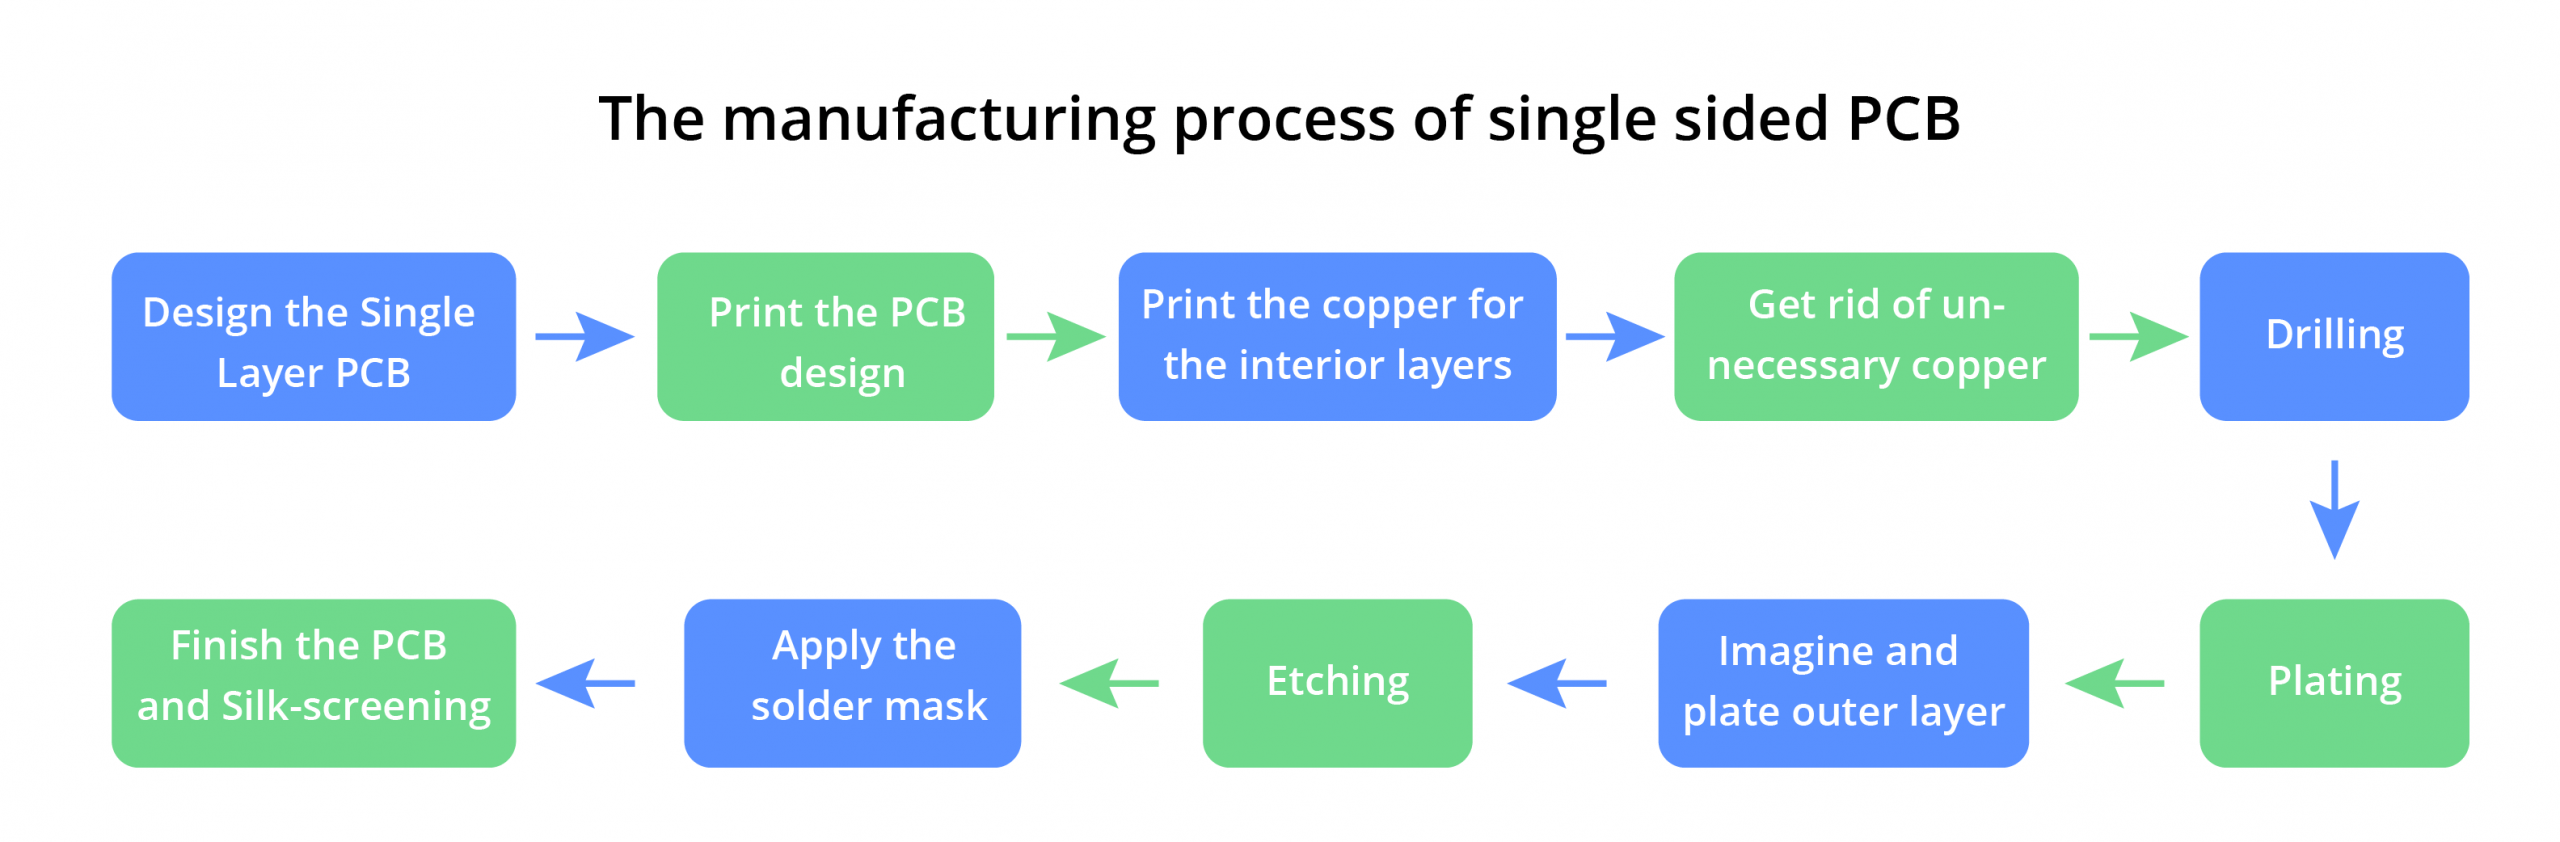 manufacturing process of single sided pcb